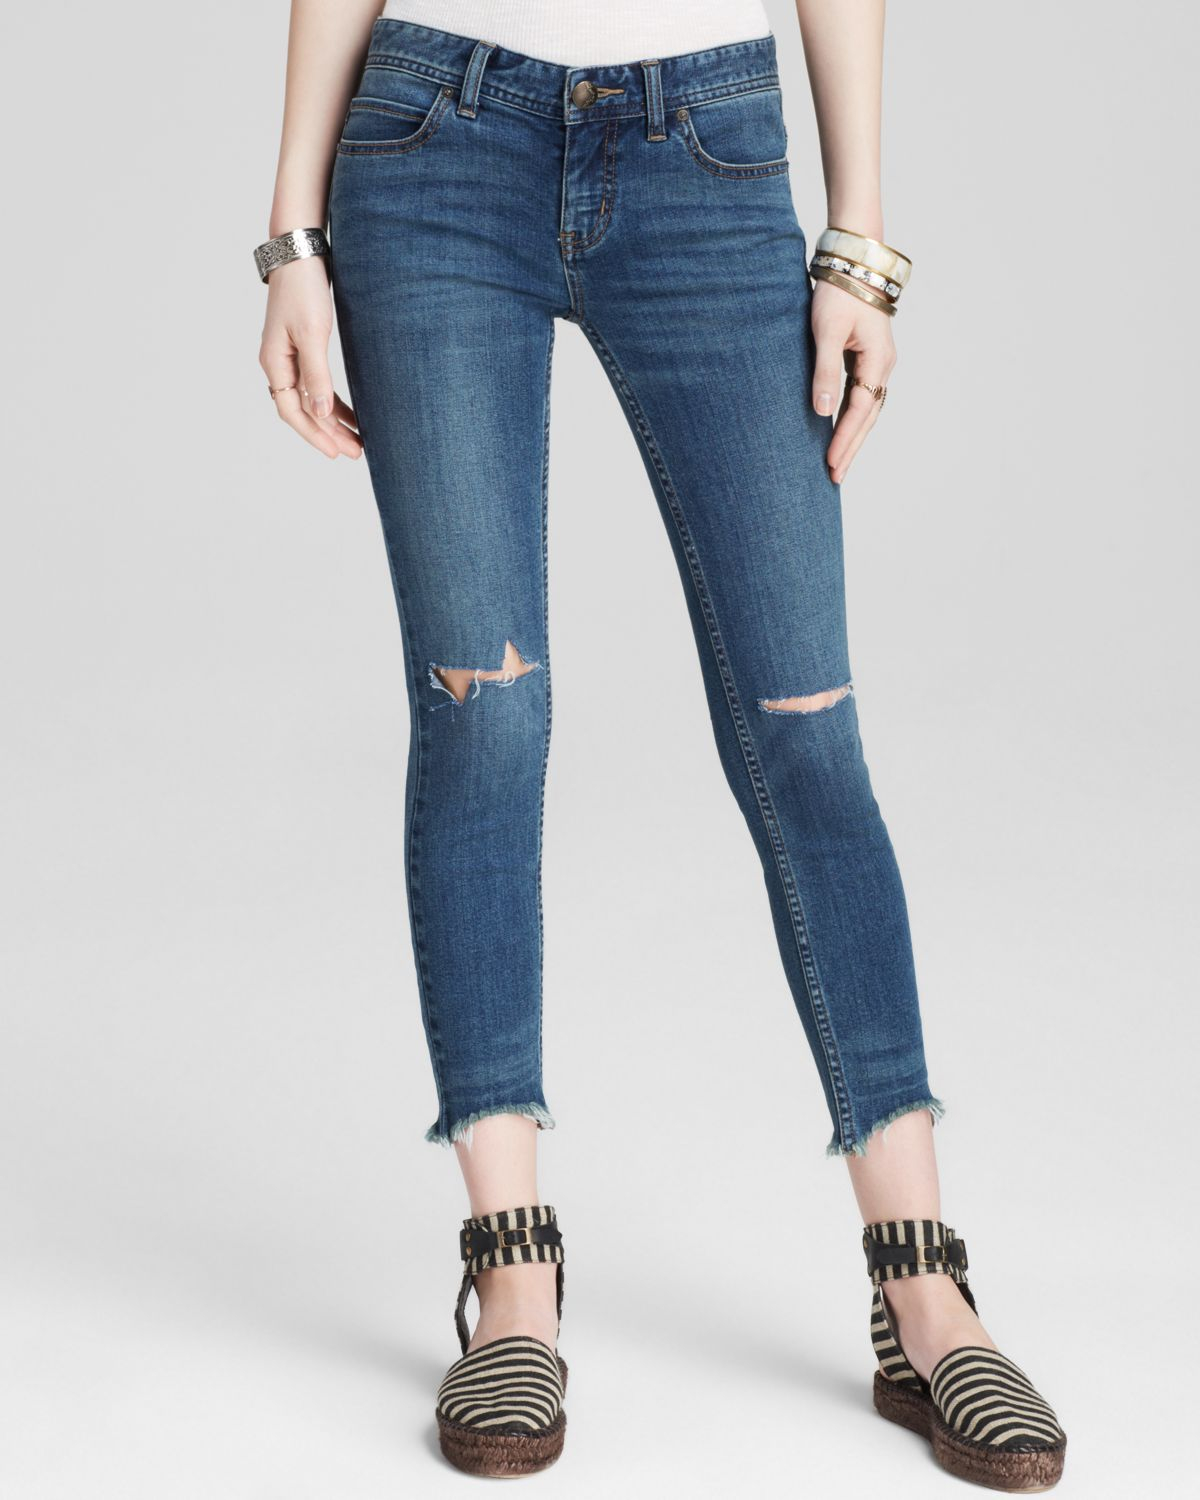 52234673fde6a Lyst - Free People Jeans - Destroyed Crop Skinny In Tupelo Blue in Blue